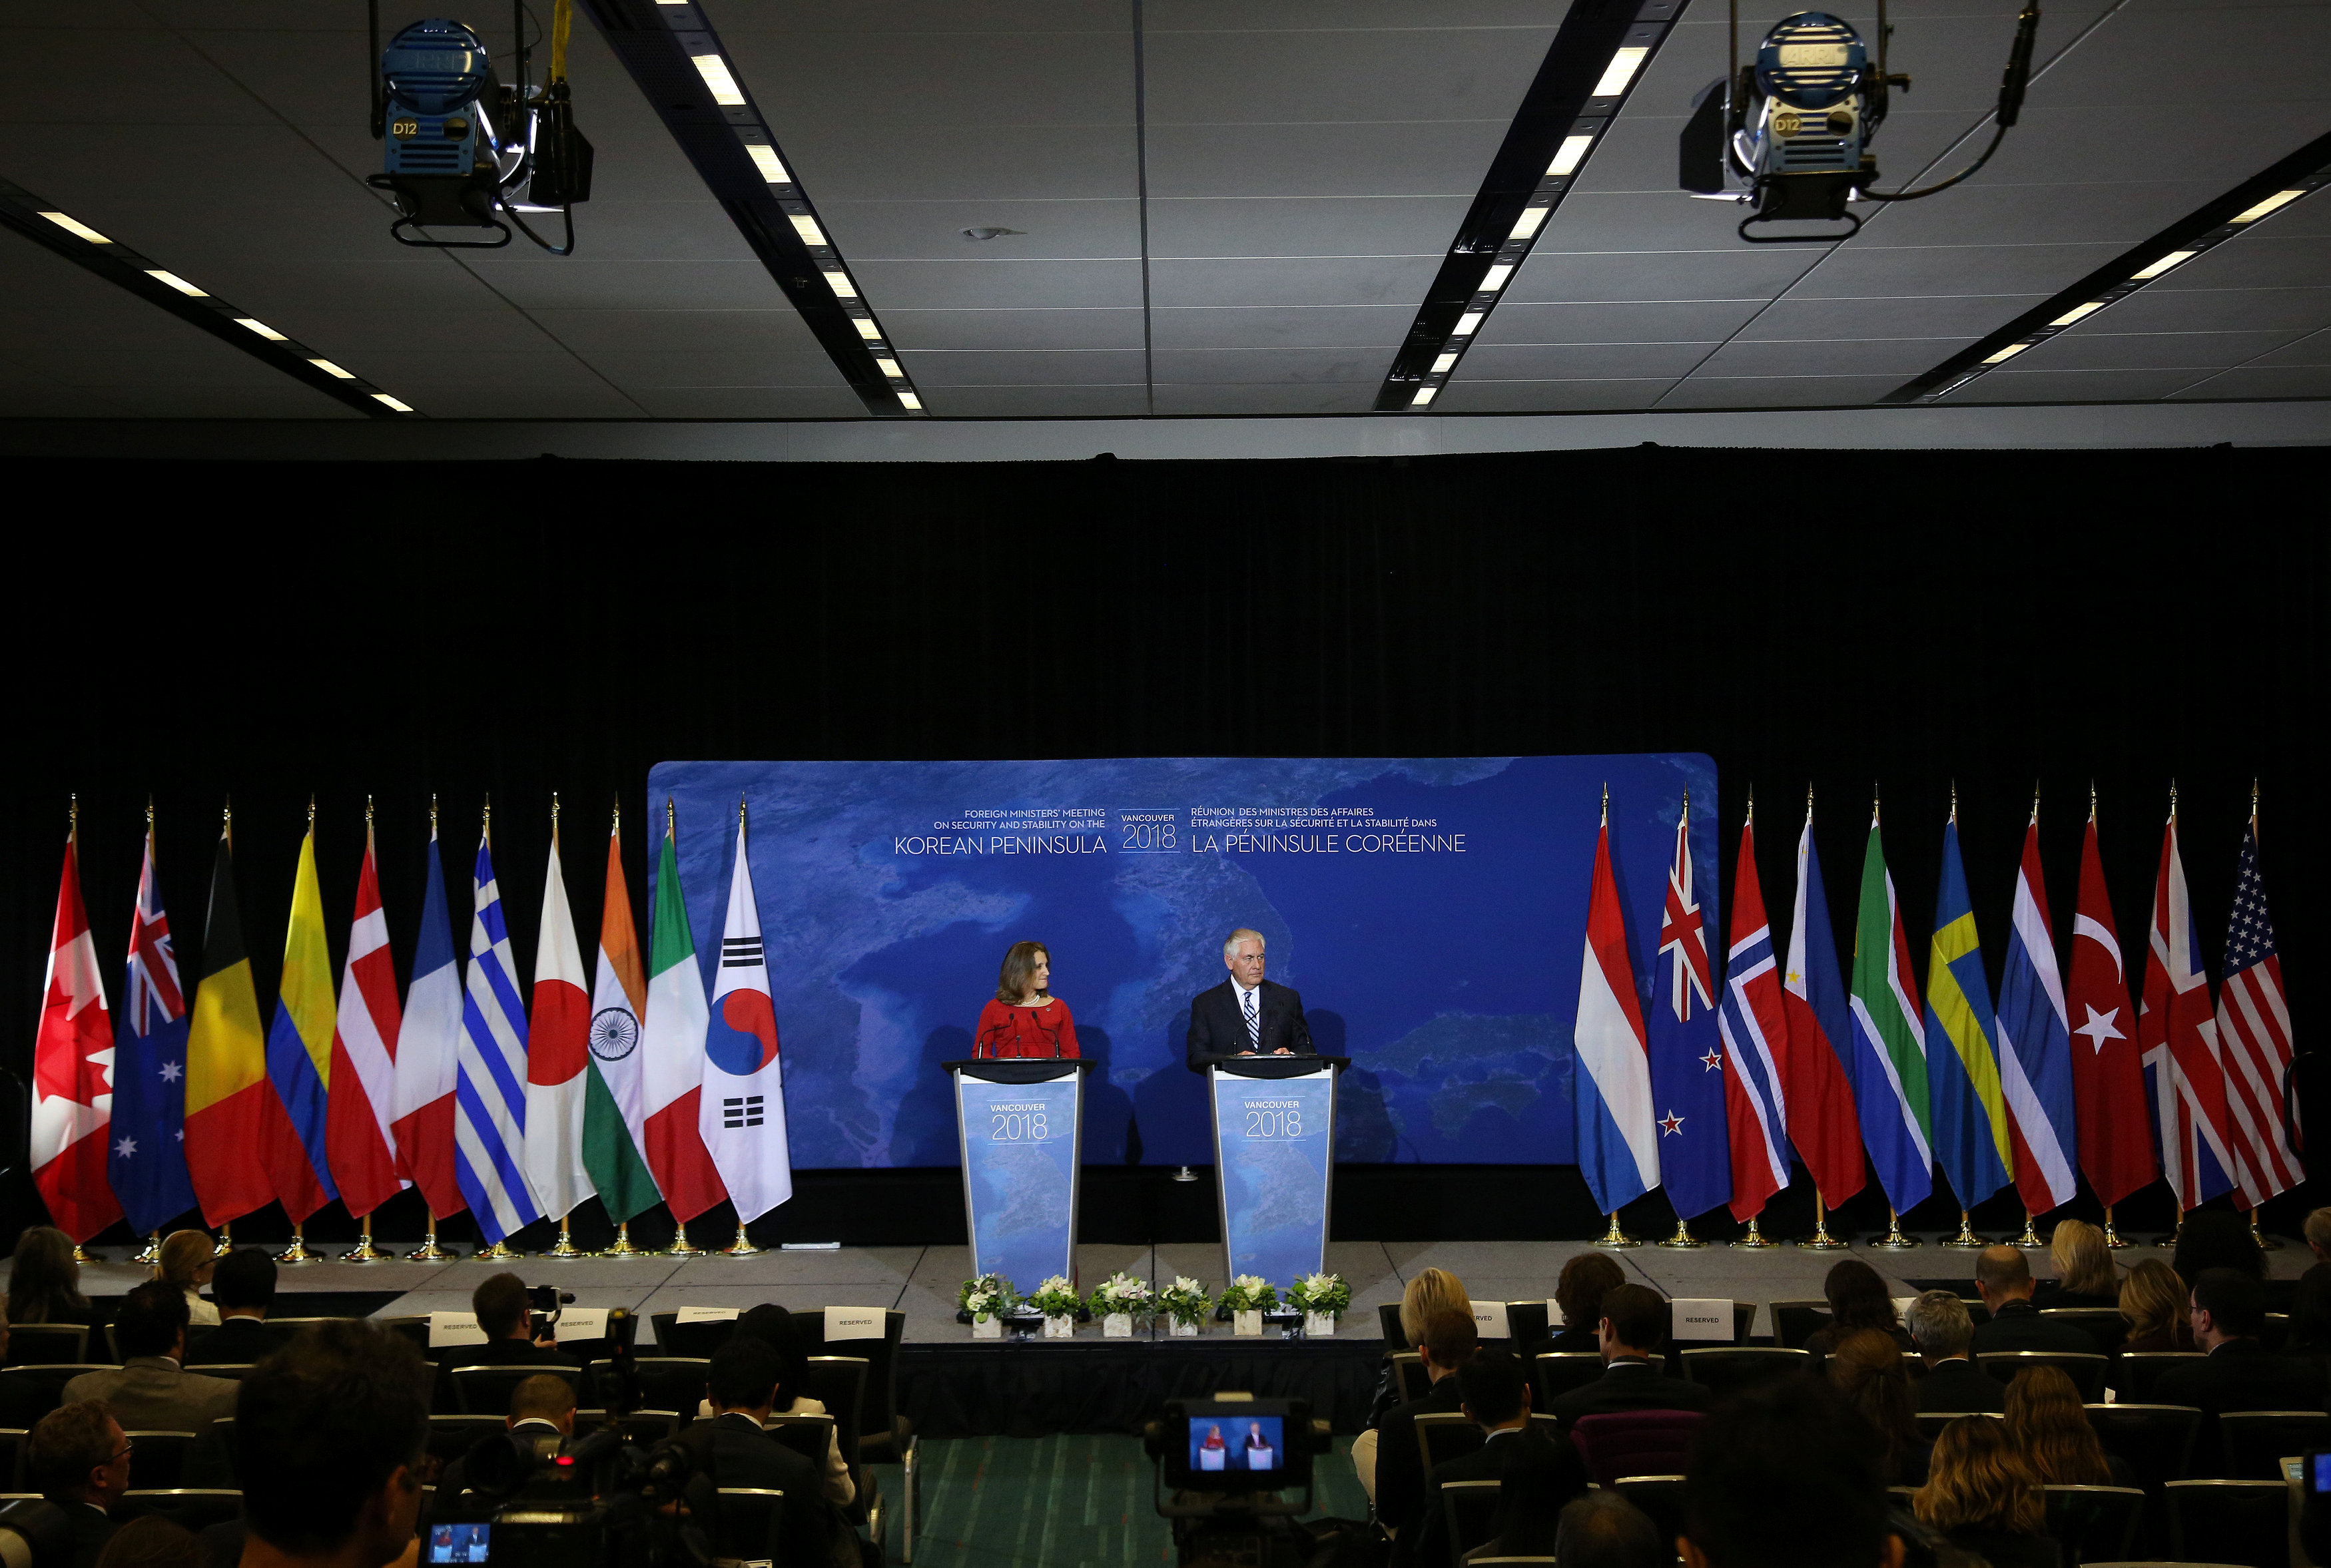 U.S. Secretary of State Rex Tillerson and Canada's Foreign Minister Chrystia Freeland speak at a news conference during the Foreign Ministers' Meeting on Security and Stability on the Korean Peninsula in Vancouver, British Columbia, Canada, January 16, 2018.